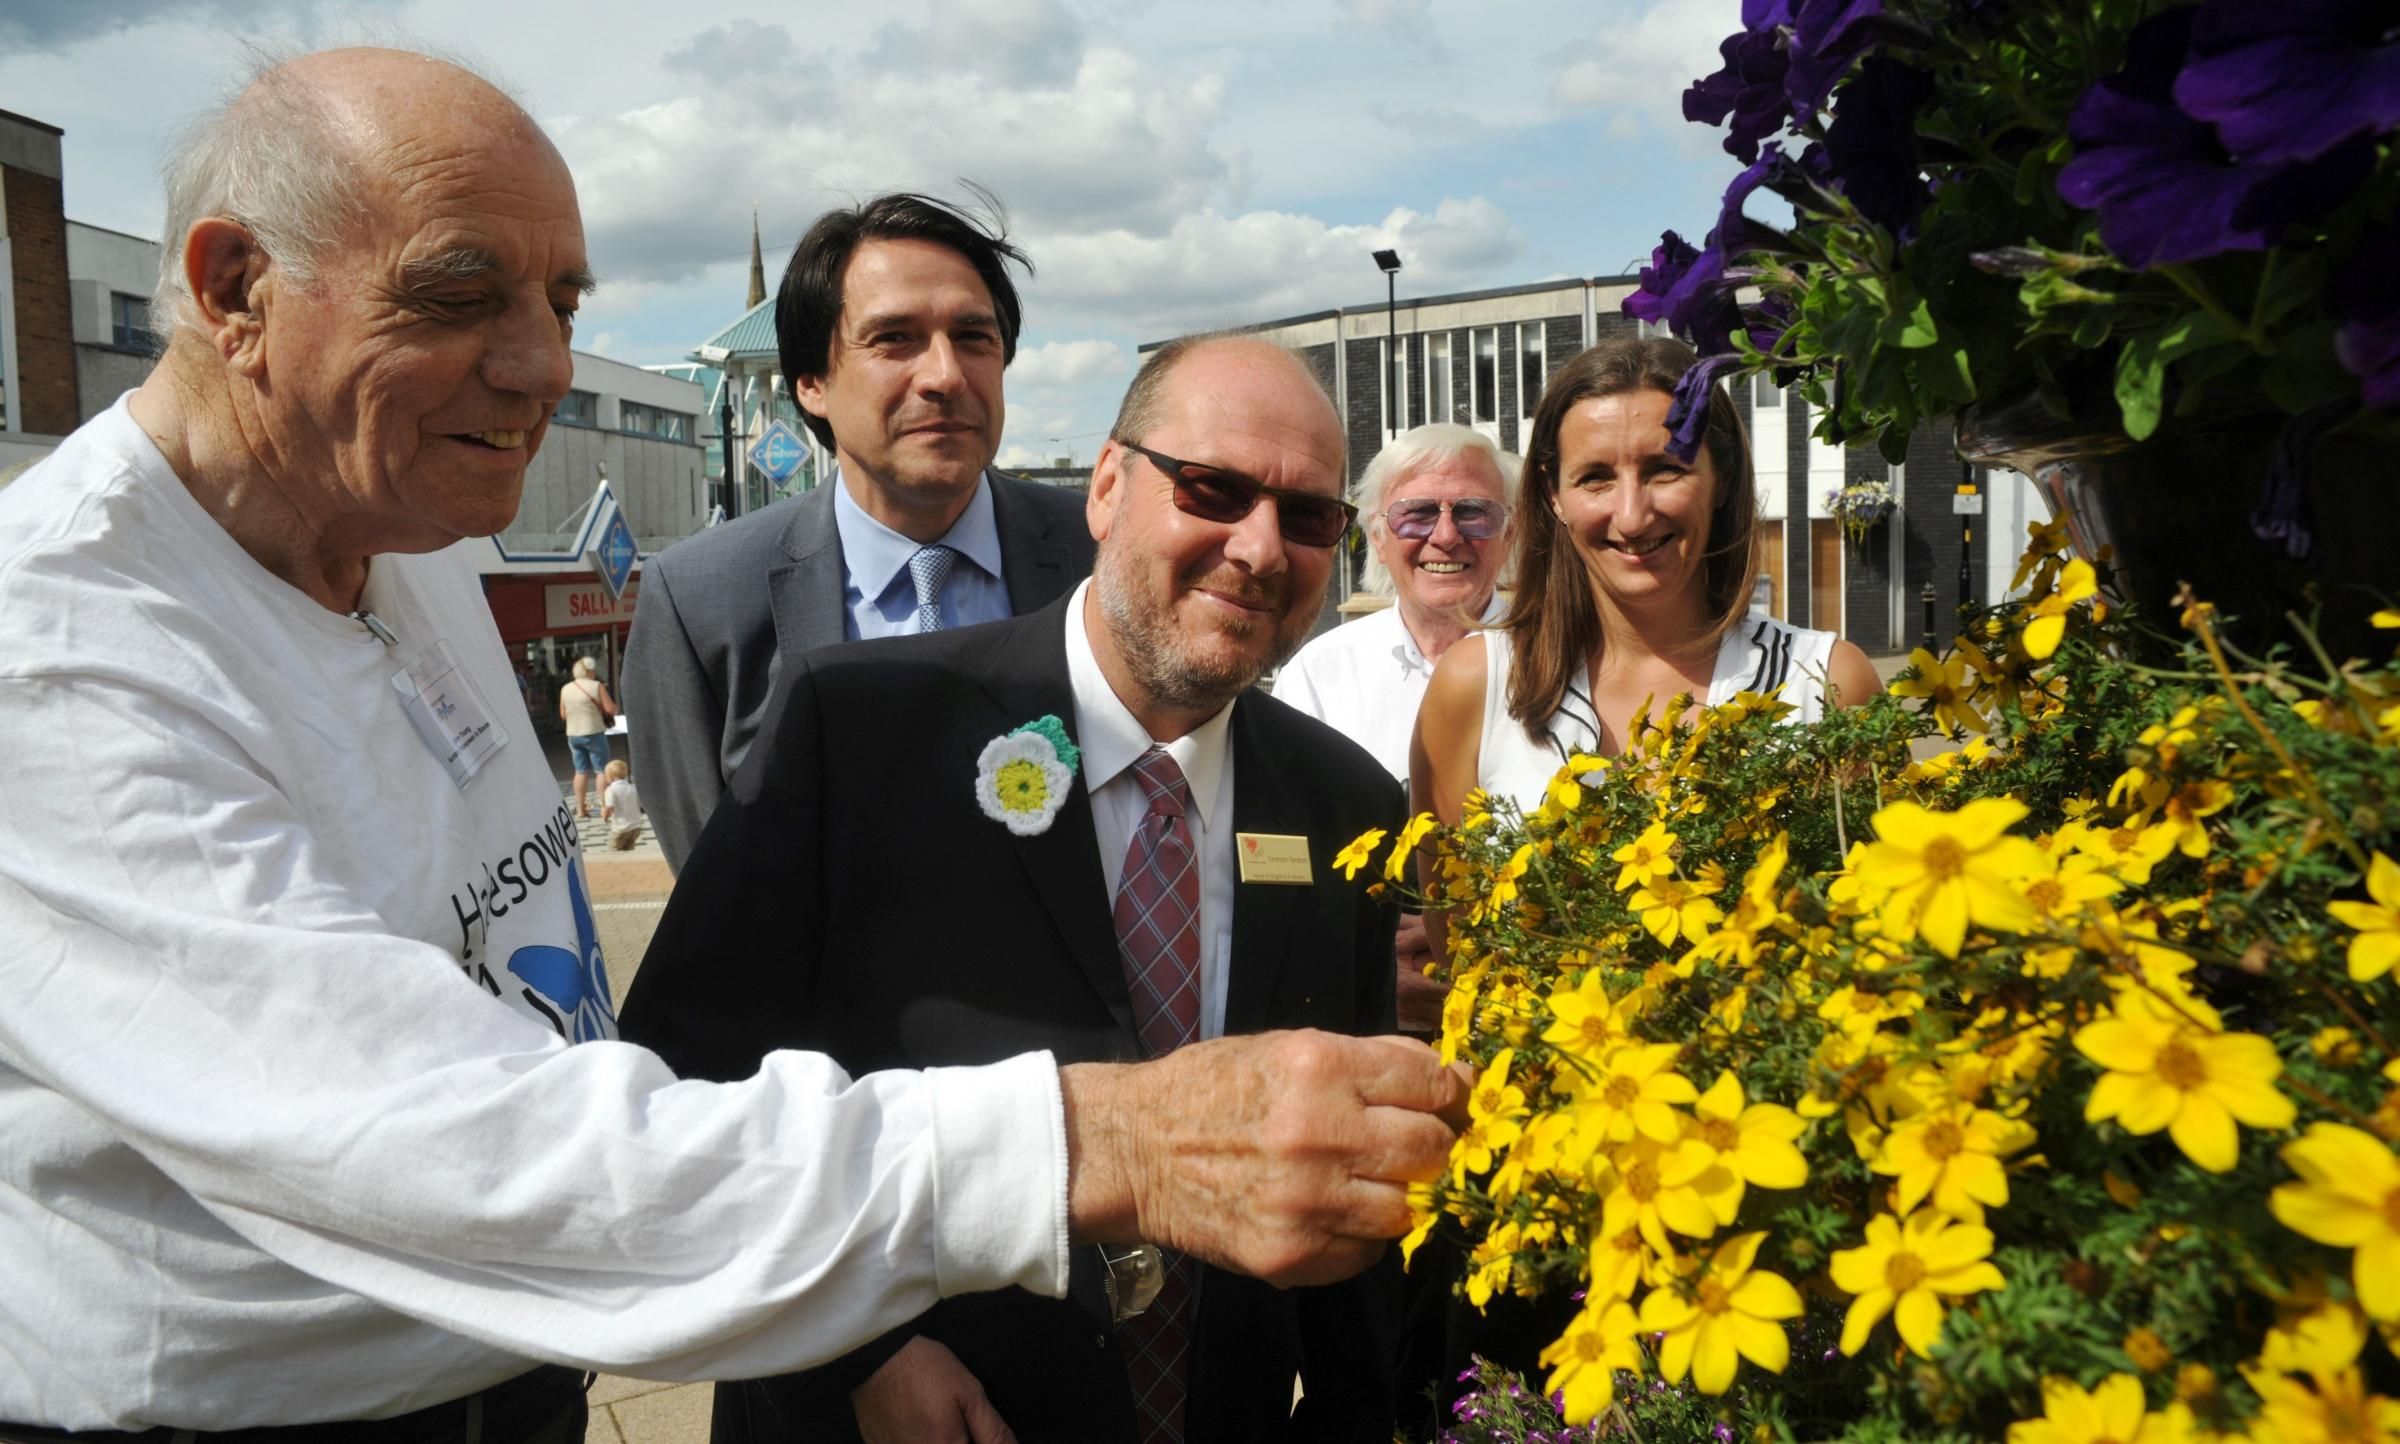 Blooming lovely: John Young, James Morris MP, Heart of England in Bloom judge Graham Redfern, Tony Billingham and Eve O'Connor in Somers Square.